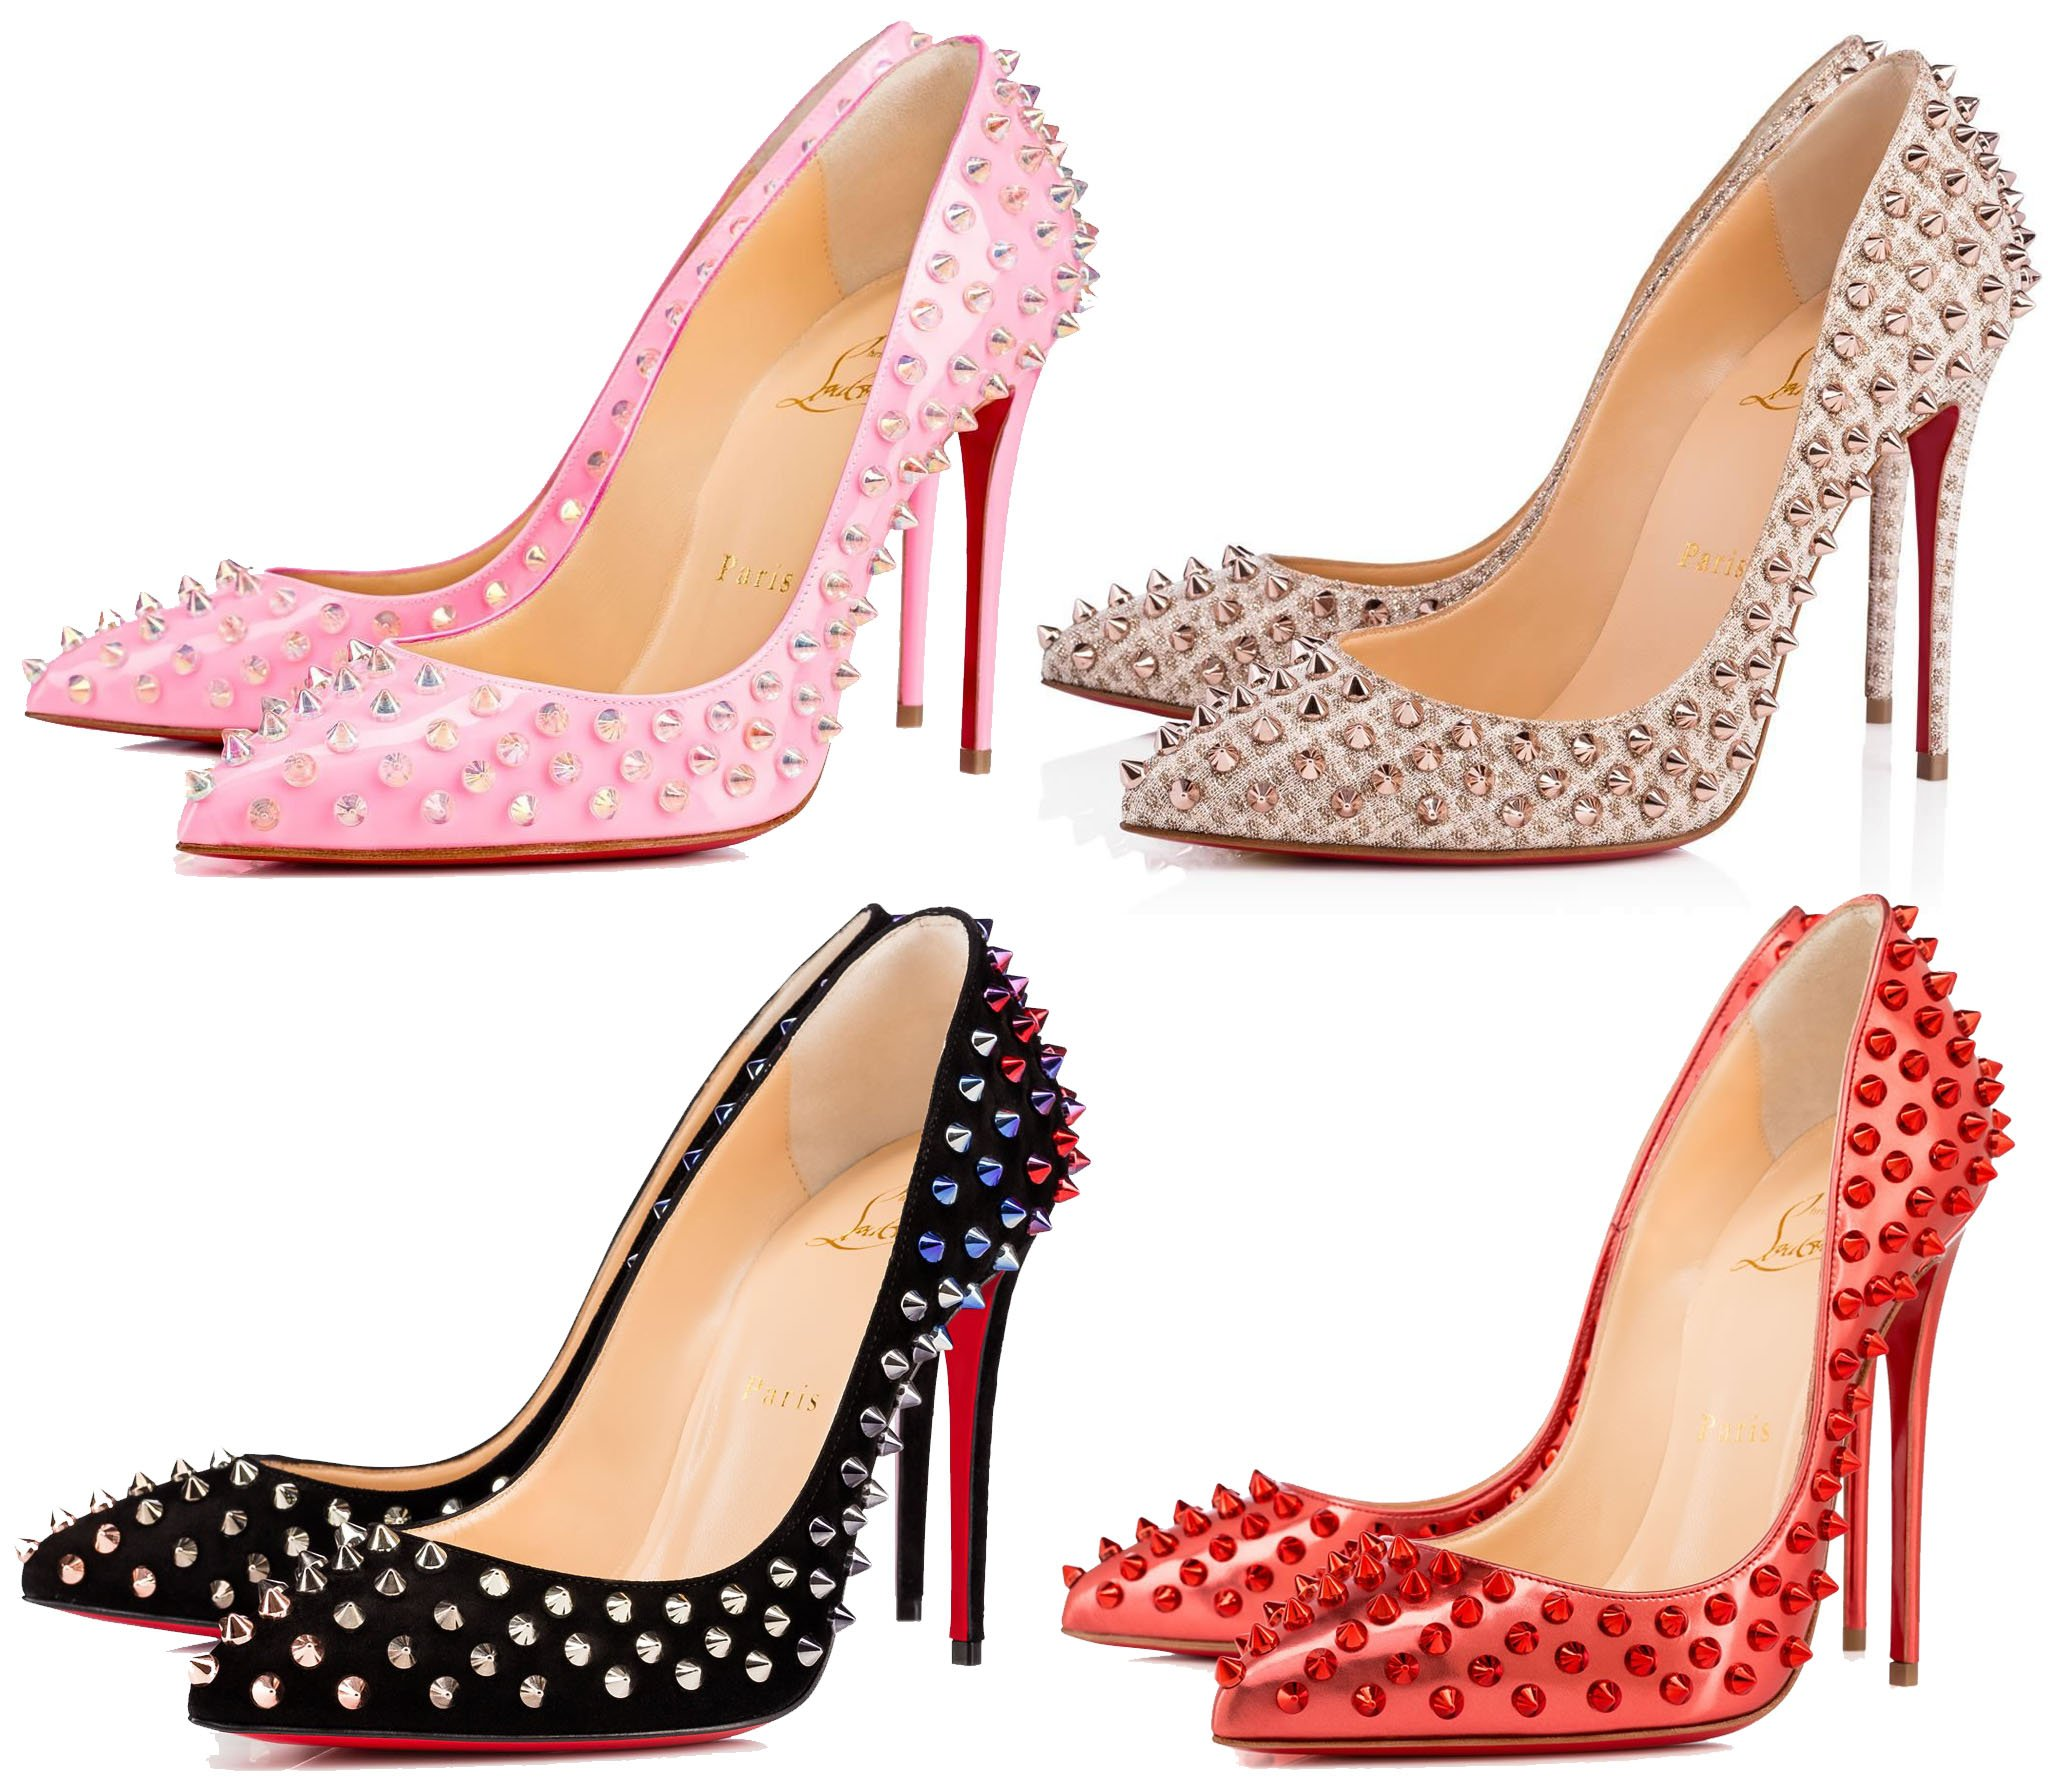 The Follies Spikes pump features Louboutin's classic sky-high silhouette with edgy spike studs